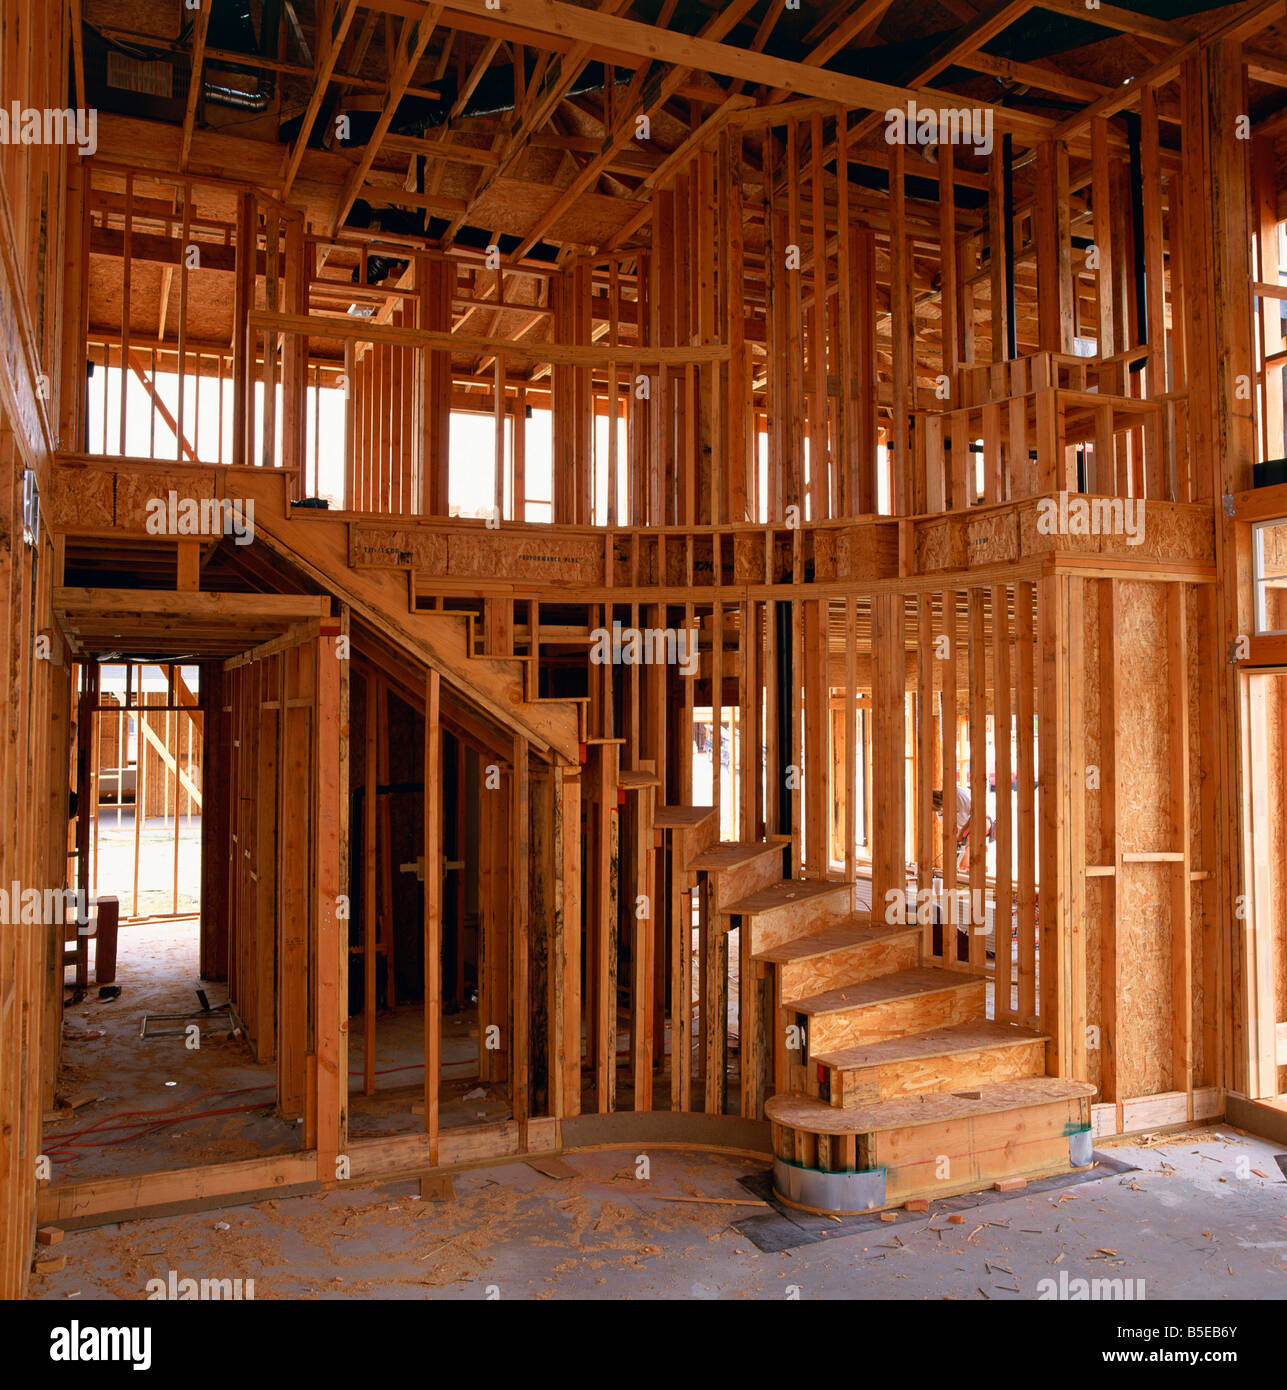 Interior of a wood framed house under construction in California USA T Gervis - Stock Image